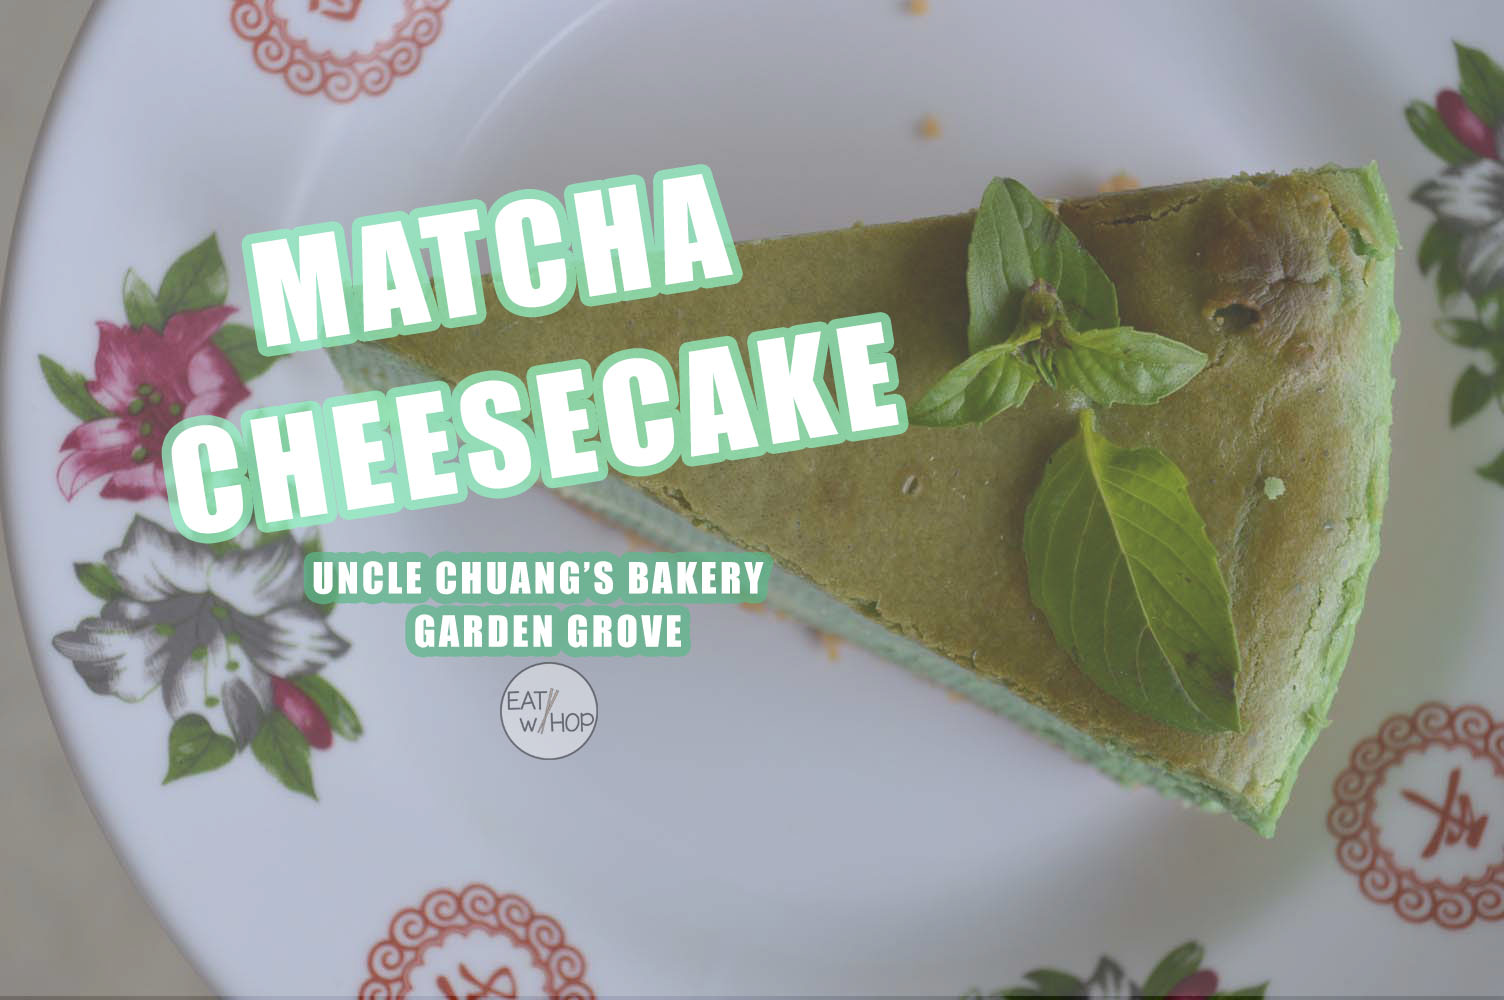 Matcha Lover? This Hidden Bakery in Garden Grove Serves Matcha Cheesecake @ Uncle Chuang's Bakery